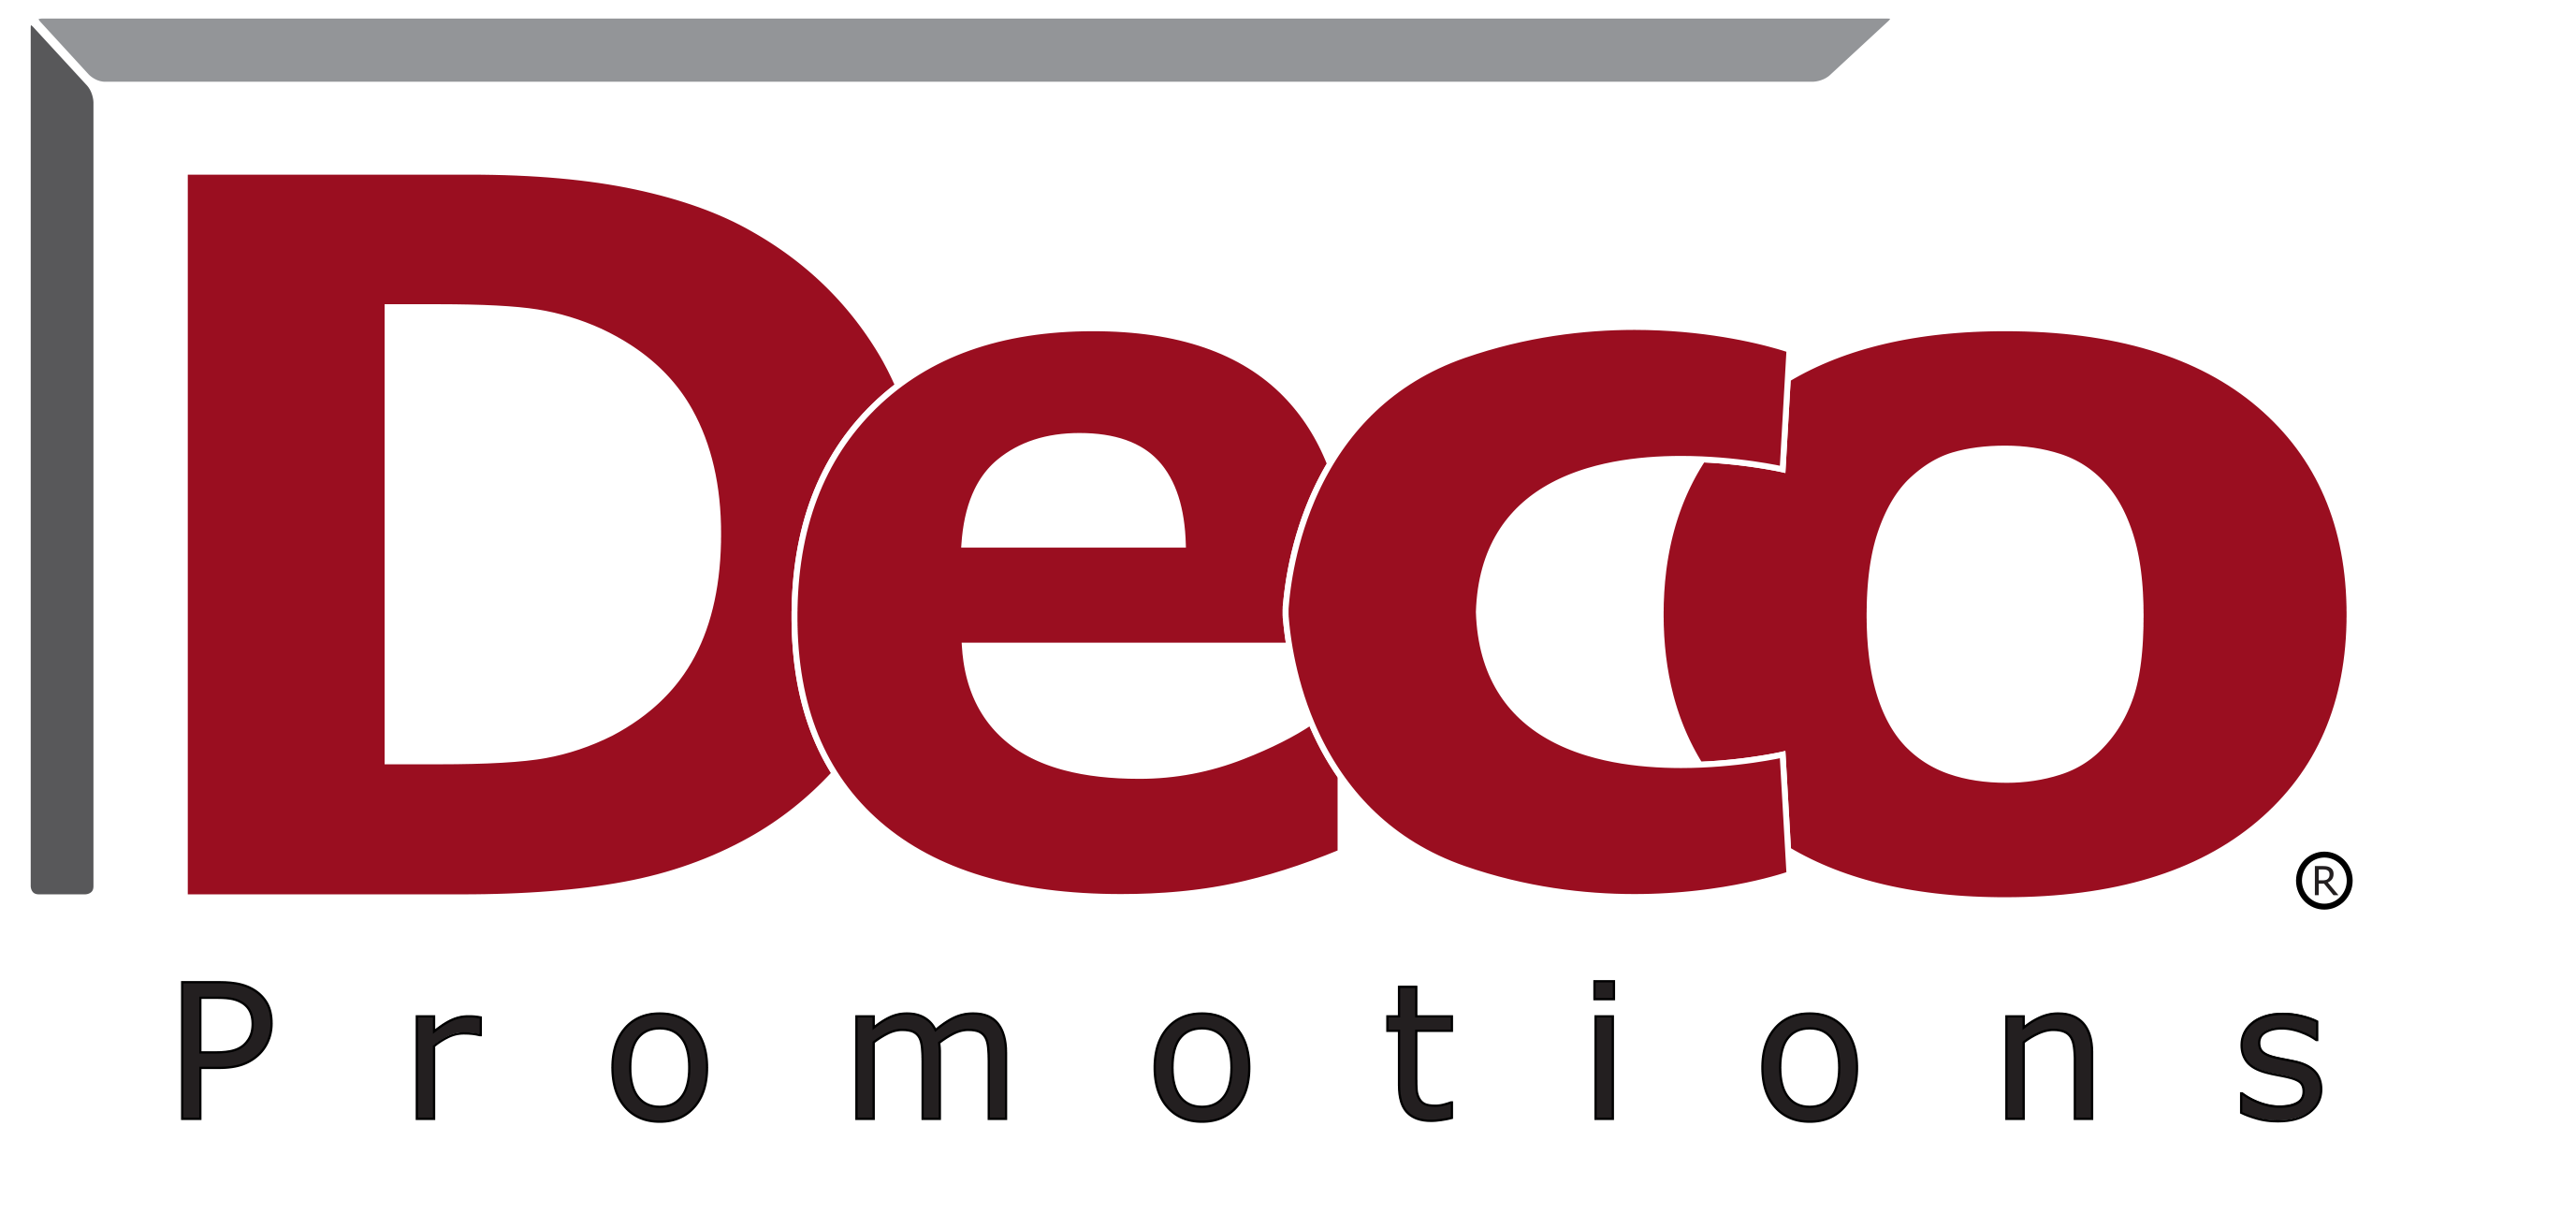 Deco Promotional Materials Logo